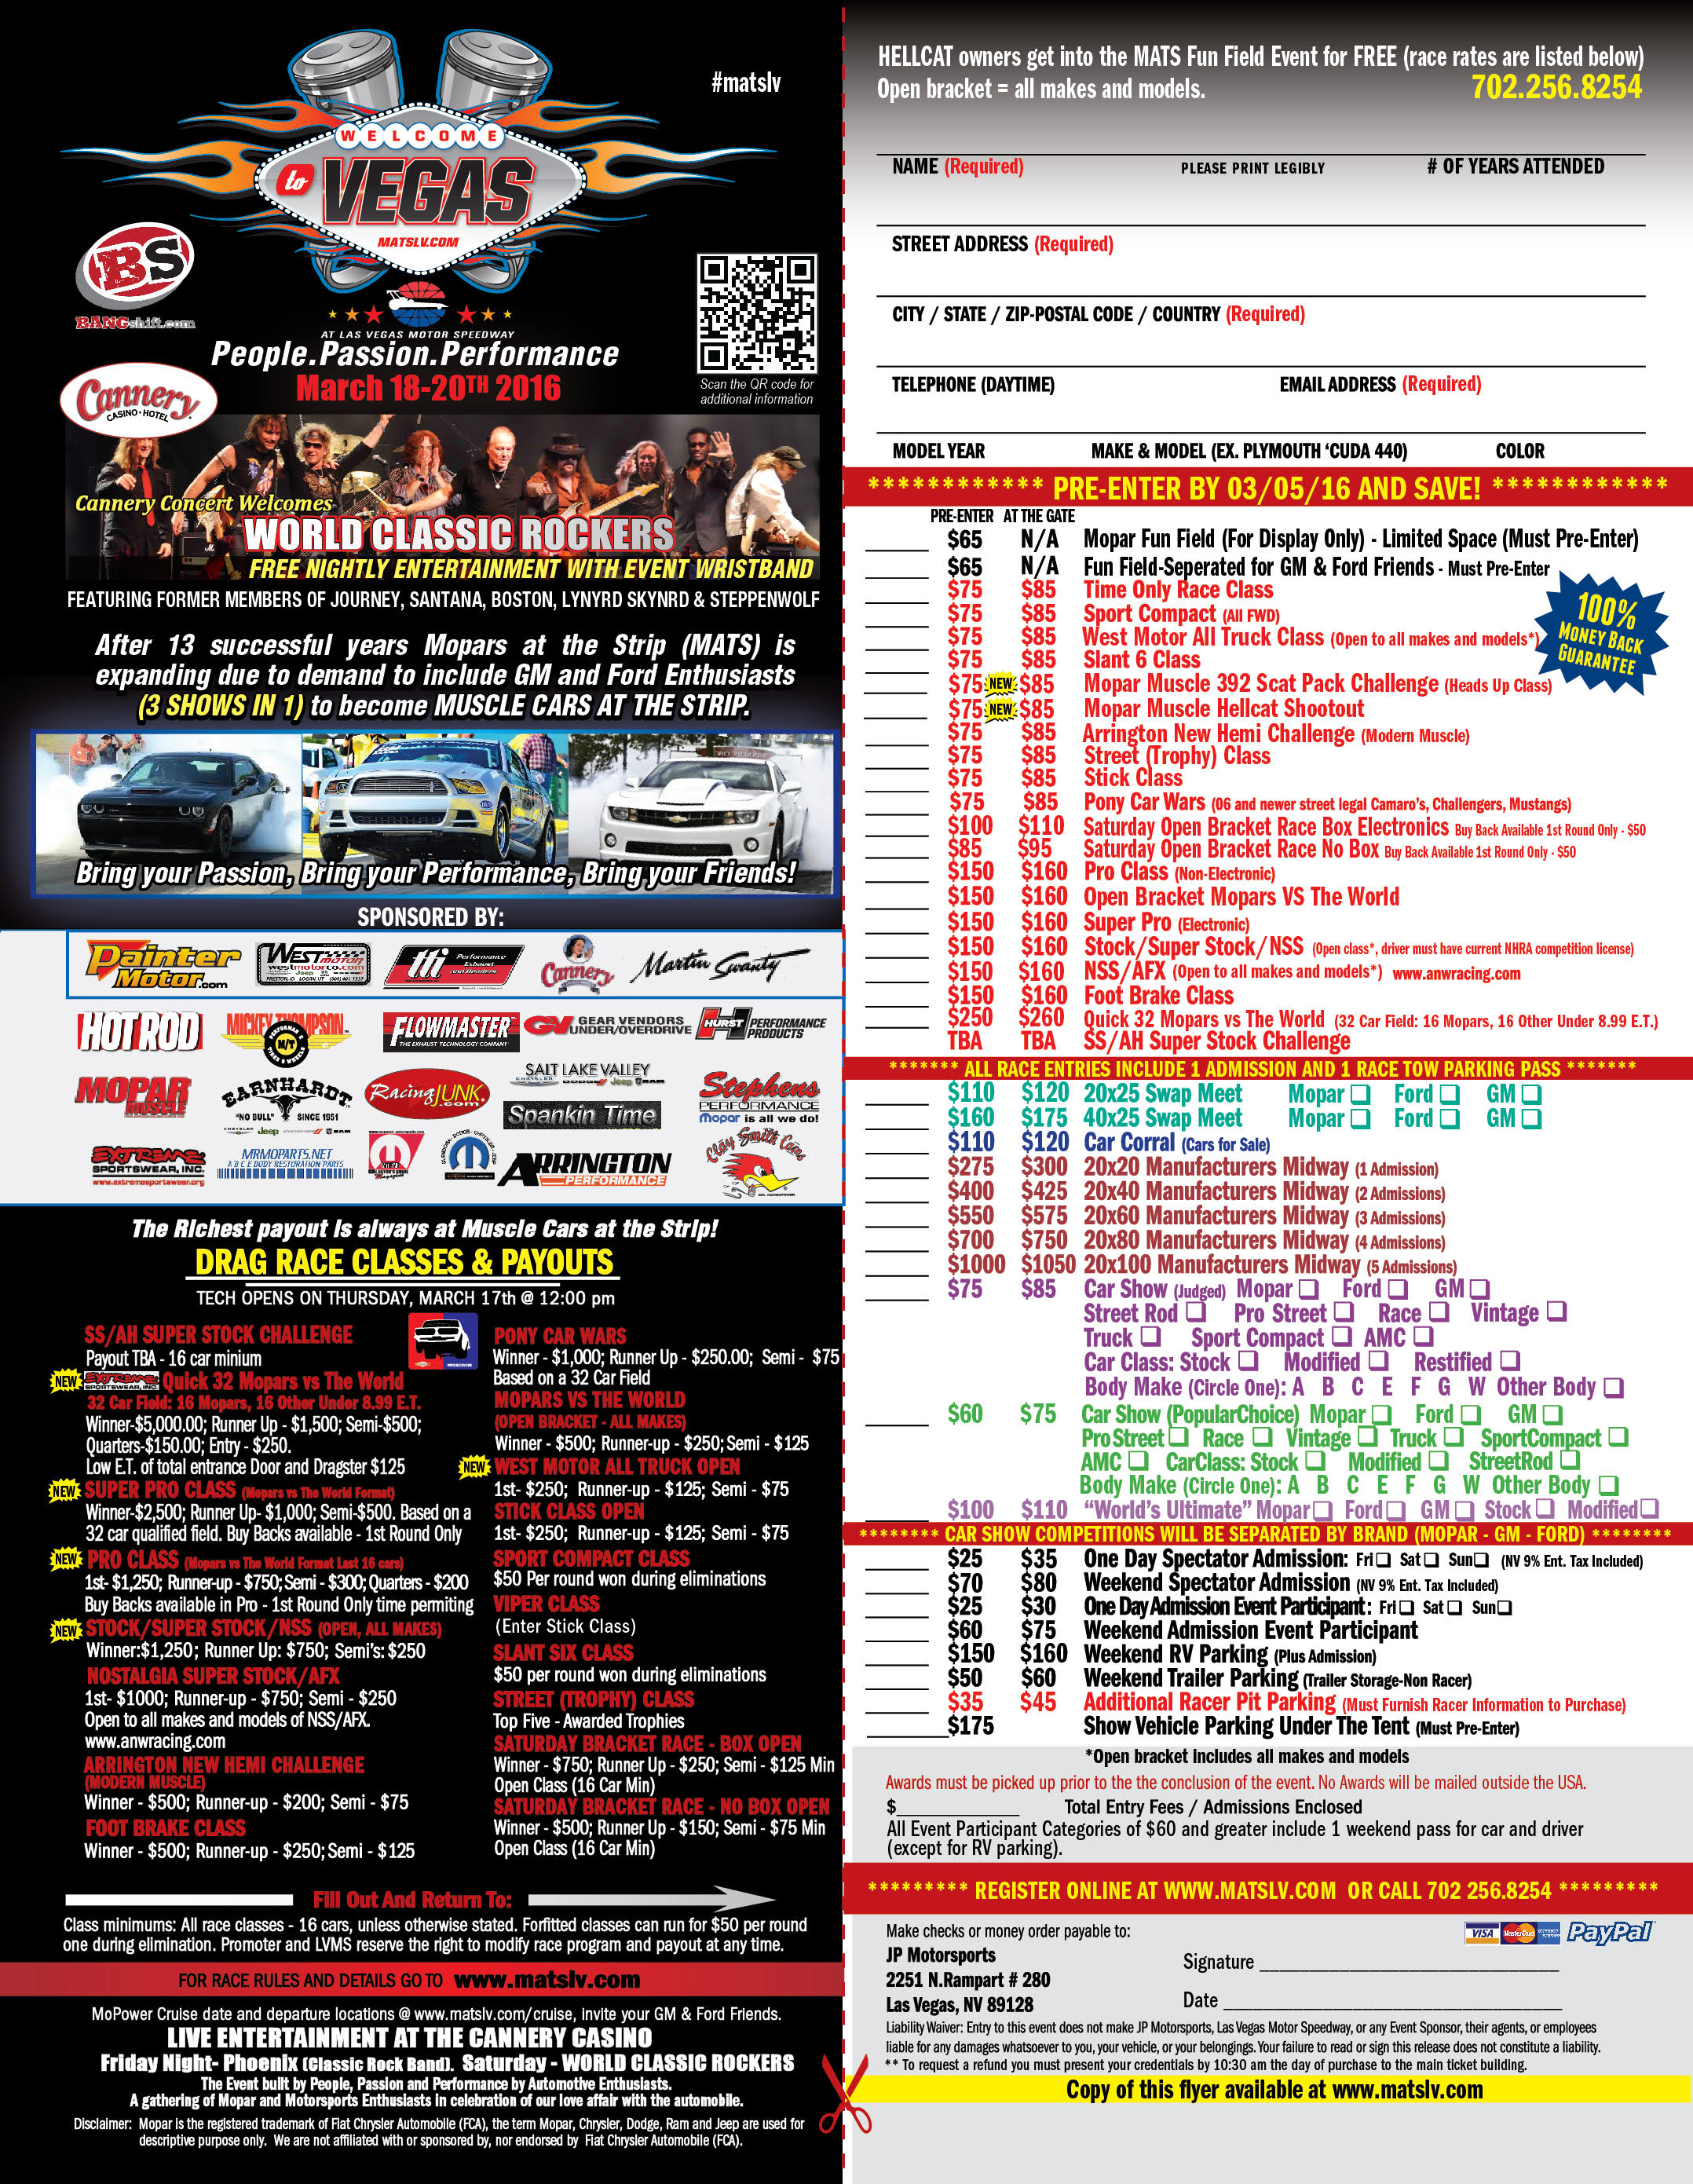 Muscle Cars At The Strip Hotrod Hotline - Fun car show award categories